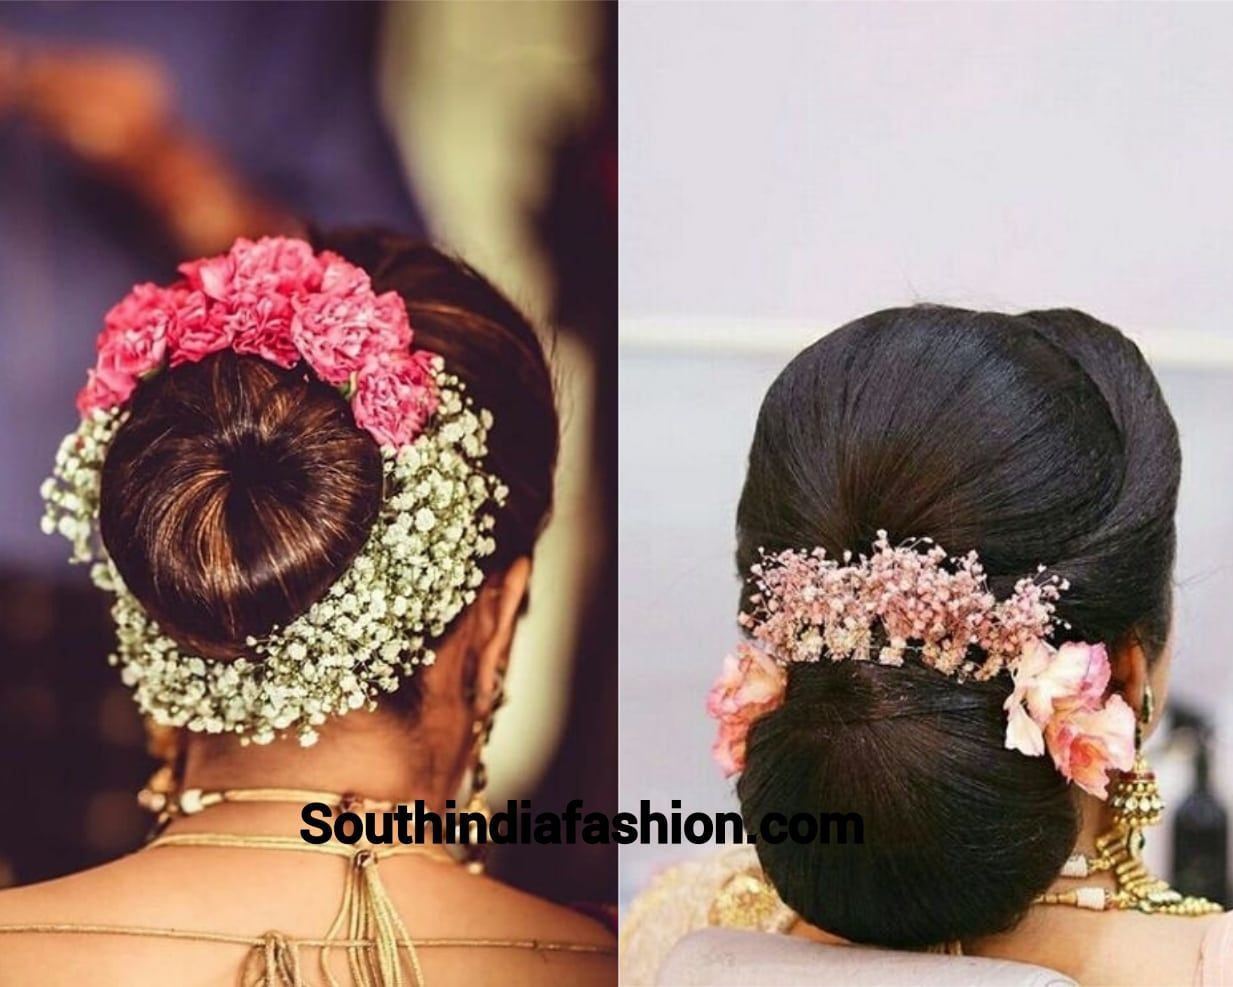 Indian Wedding Bun Hairstyle With Flowers And Gajra In 2020 Wedding Bun Hairstyles Indian Bun Hairstyles Mom Hairstyles